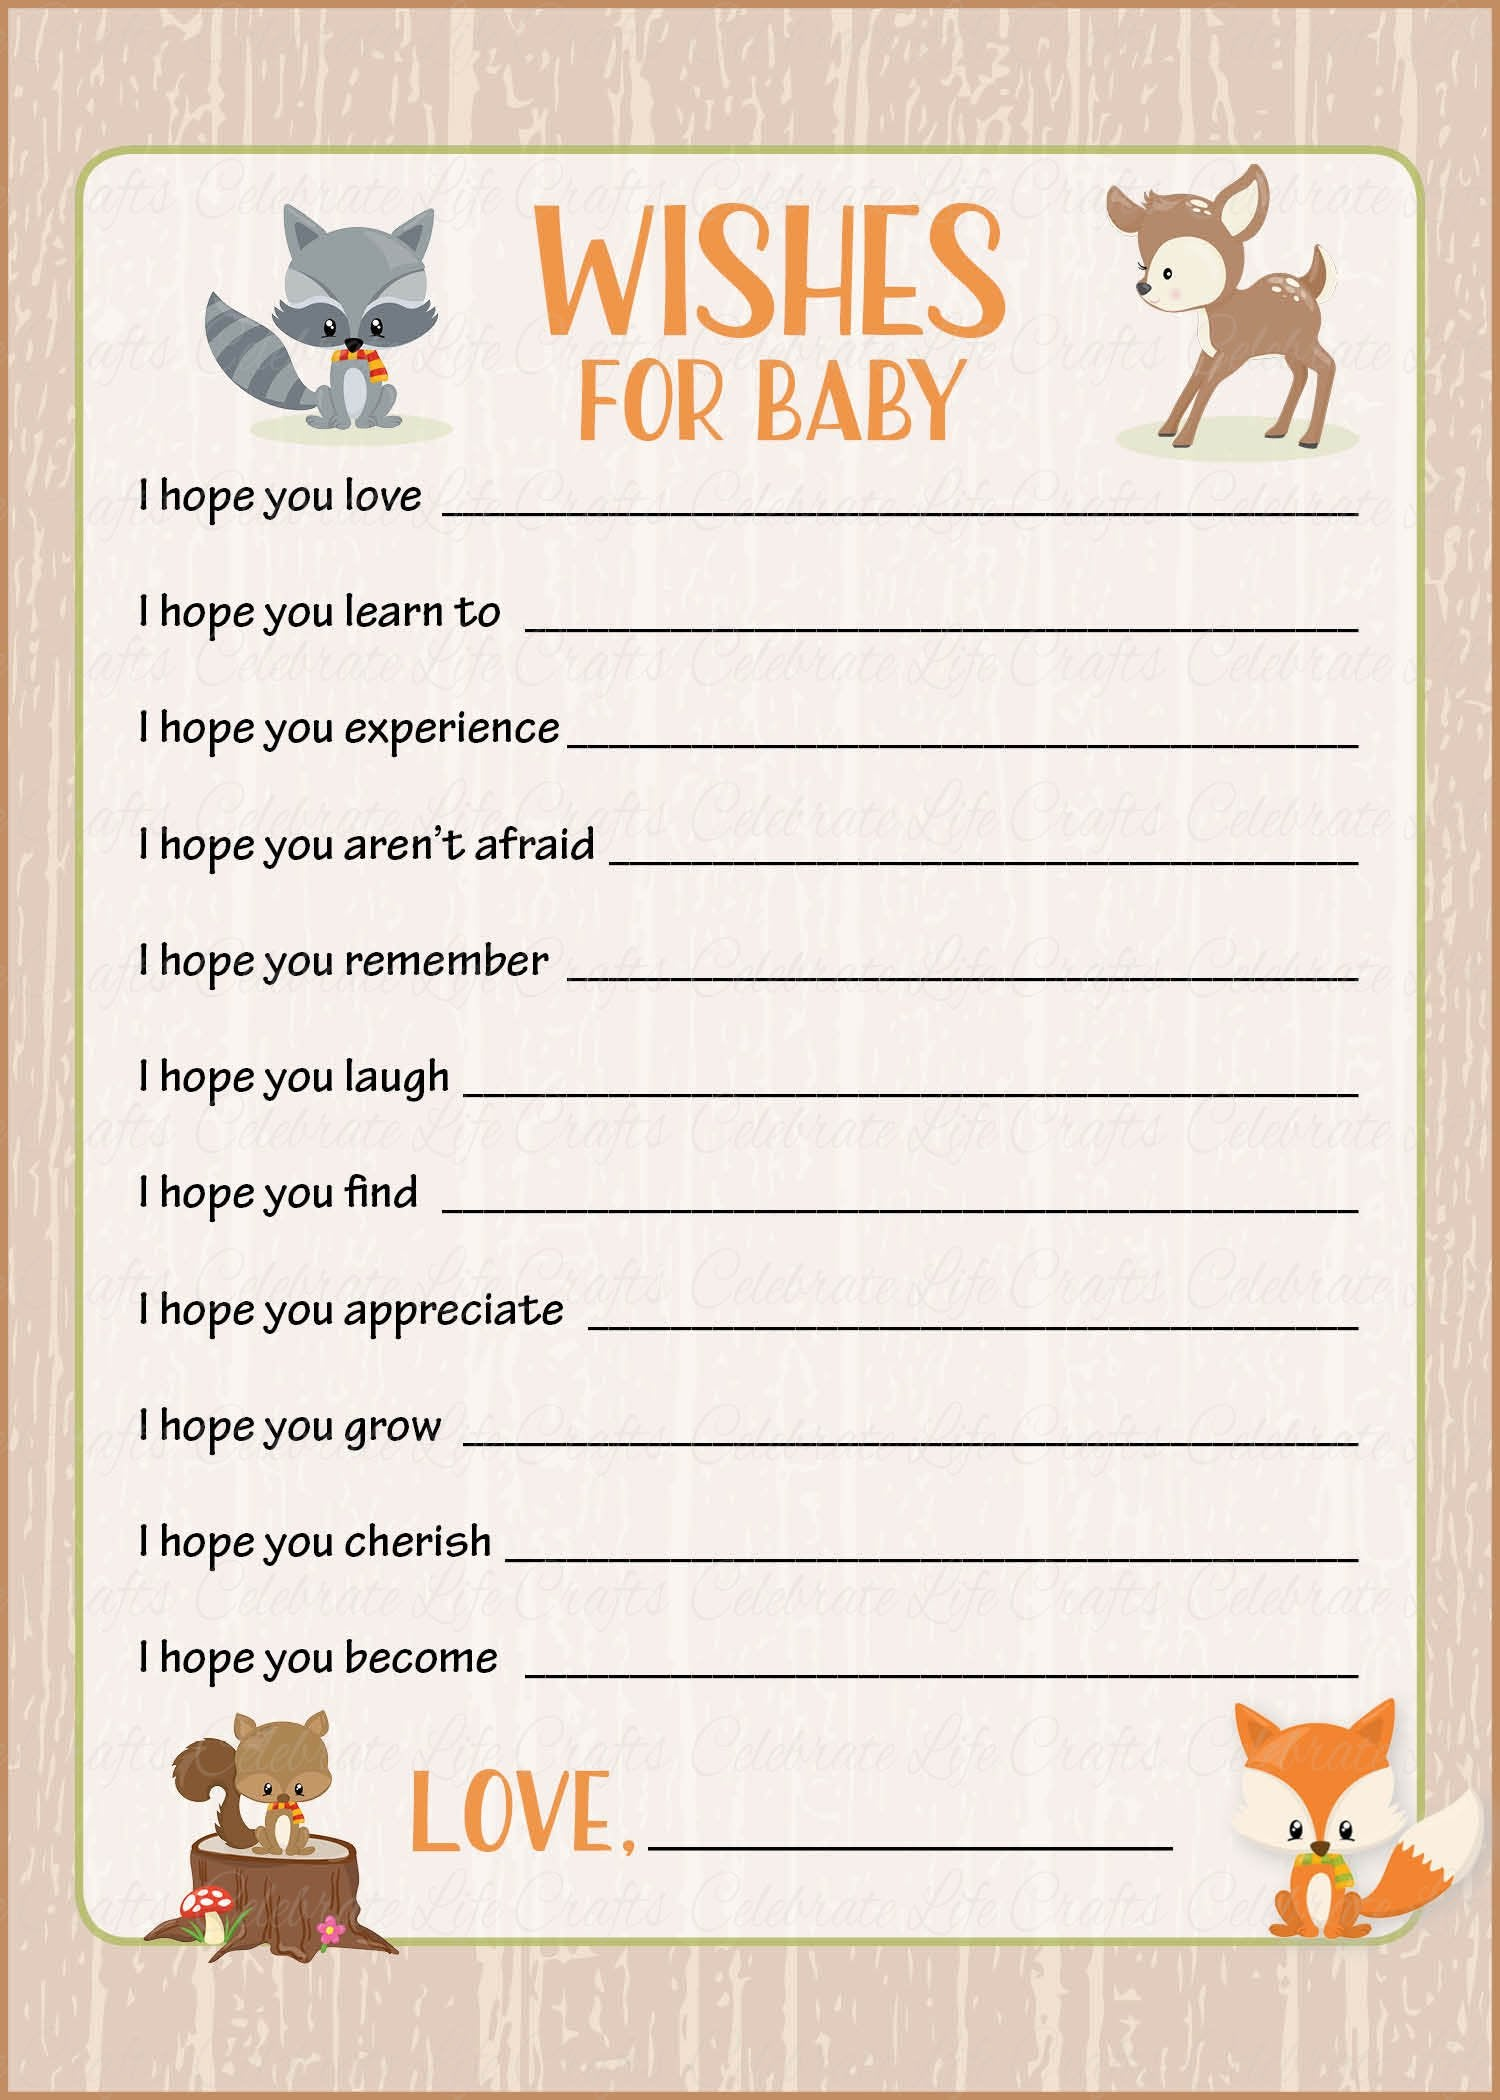 picture regarding Wishes for Baby Printable identified as Wants for Kid Playing cards - PRINTABLE Down load - Forest Pets Woodland Child Shower Recreation - B18002